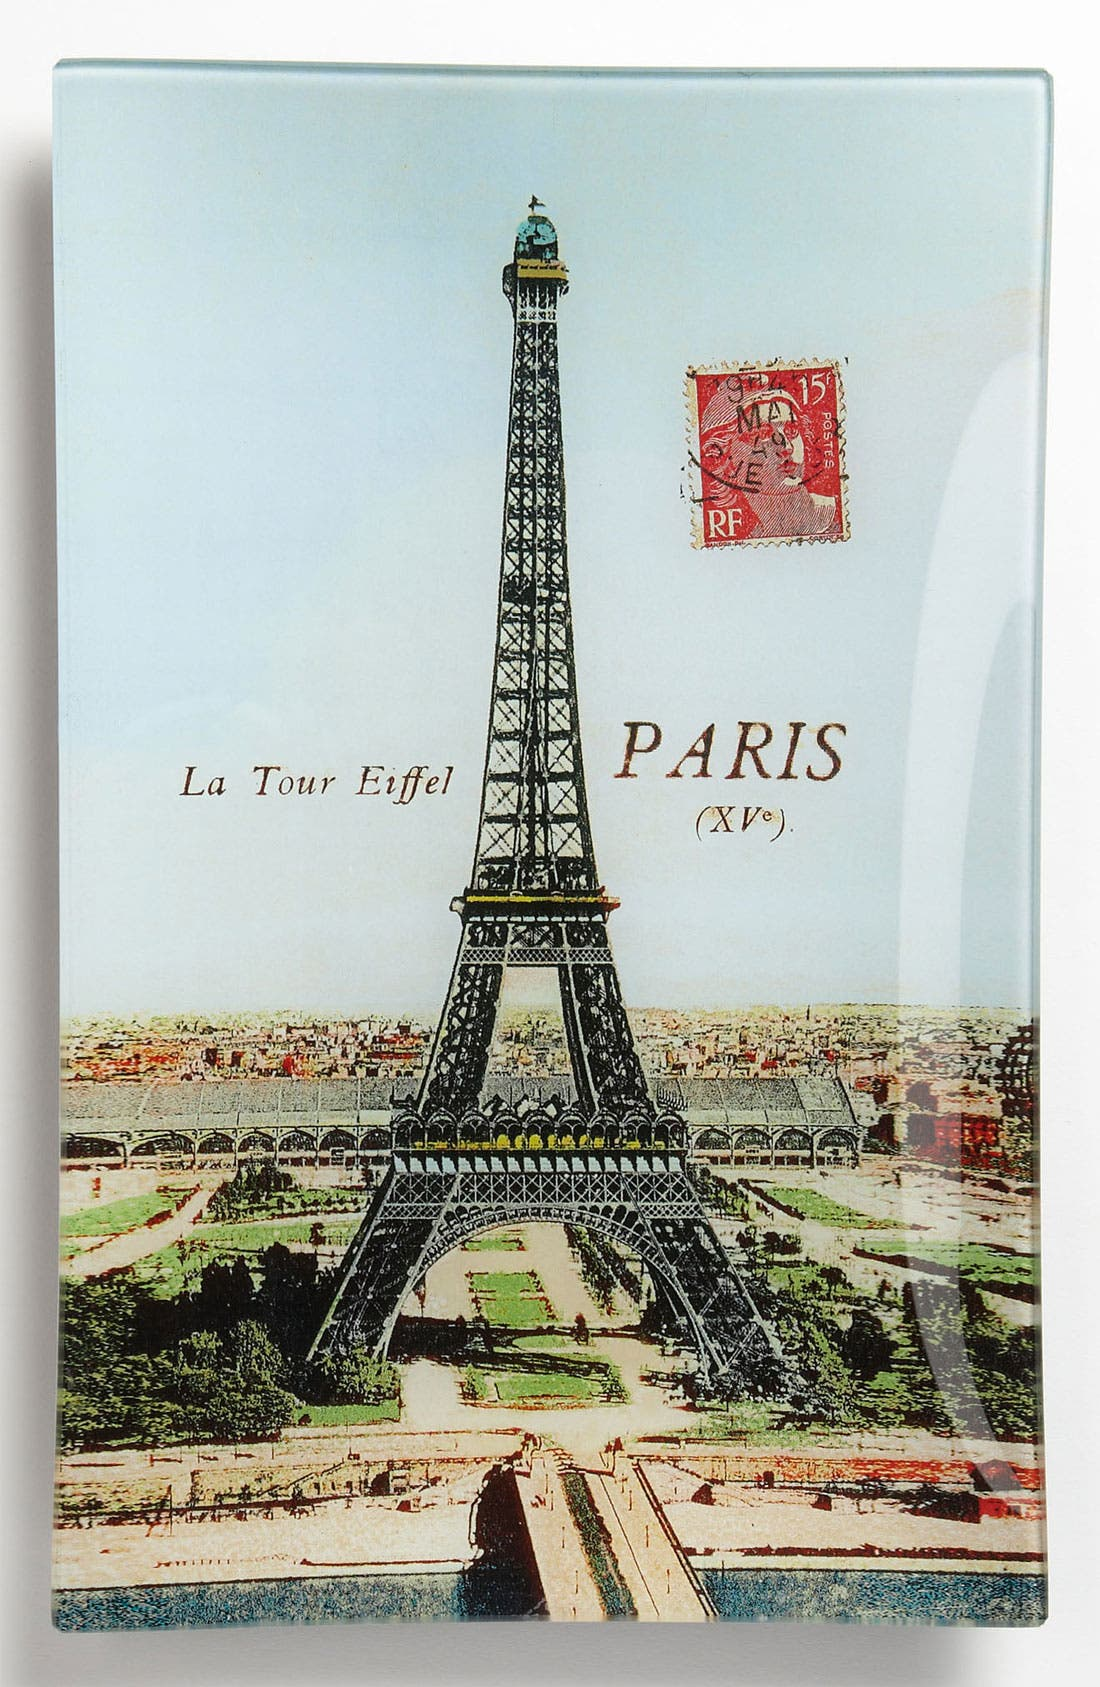 Alternate Image 1 Selected - Ben's Garden 'La Tour Eiffel' Decorative Glass Tray